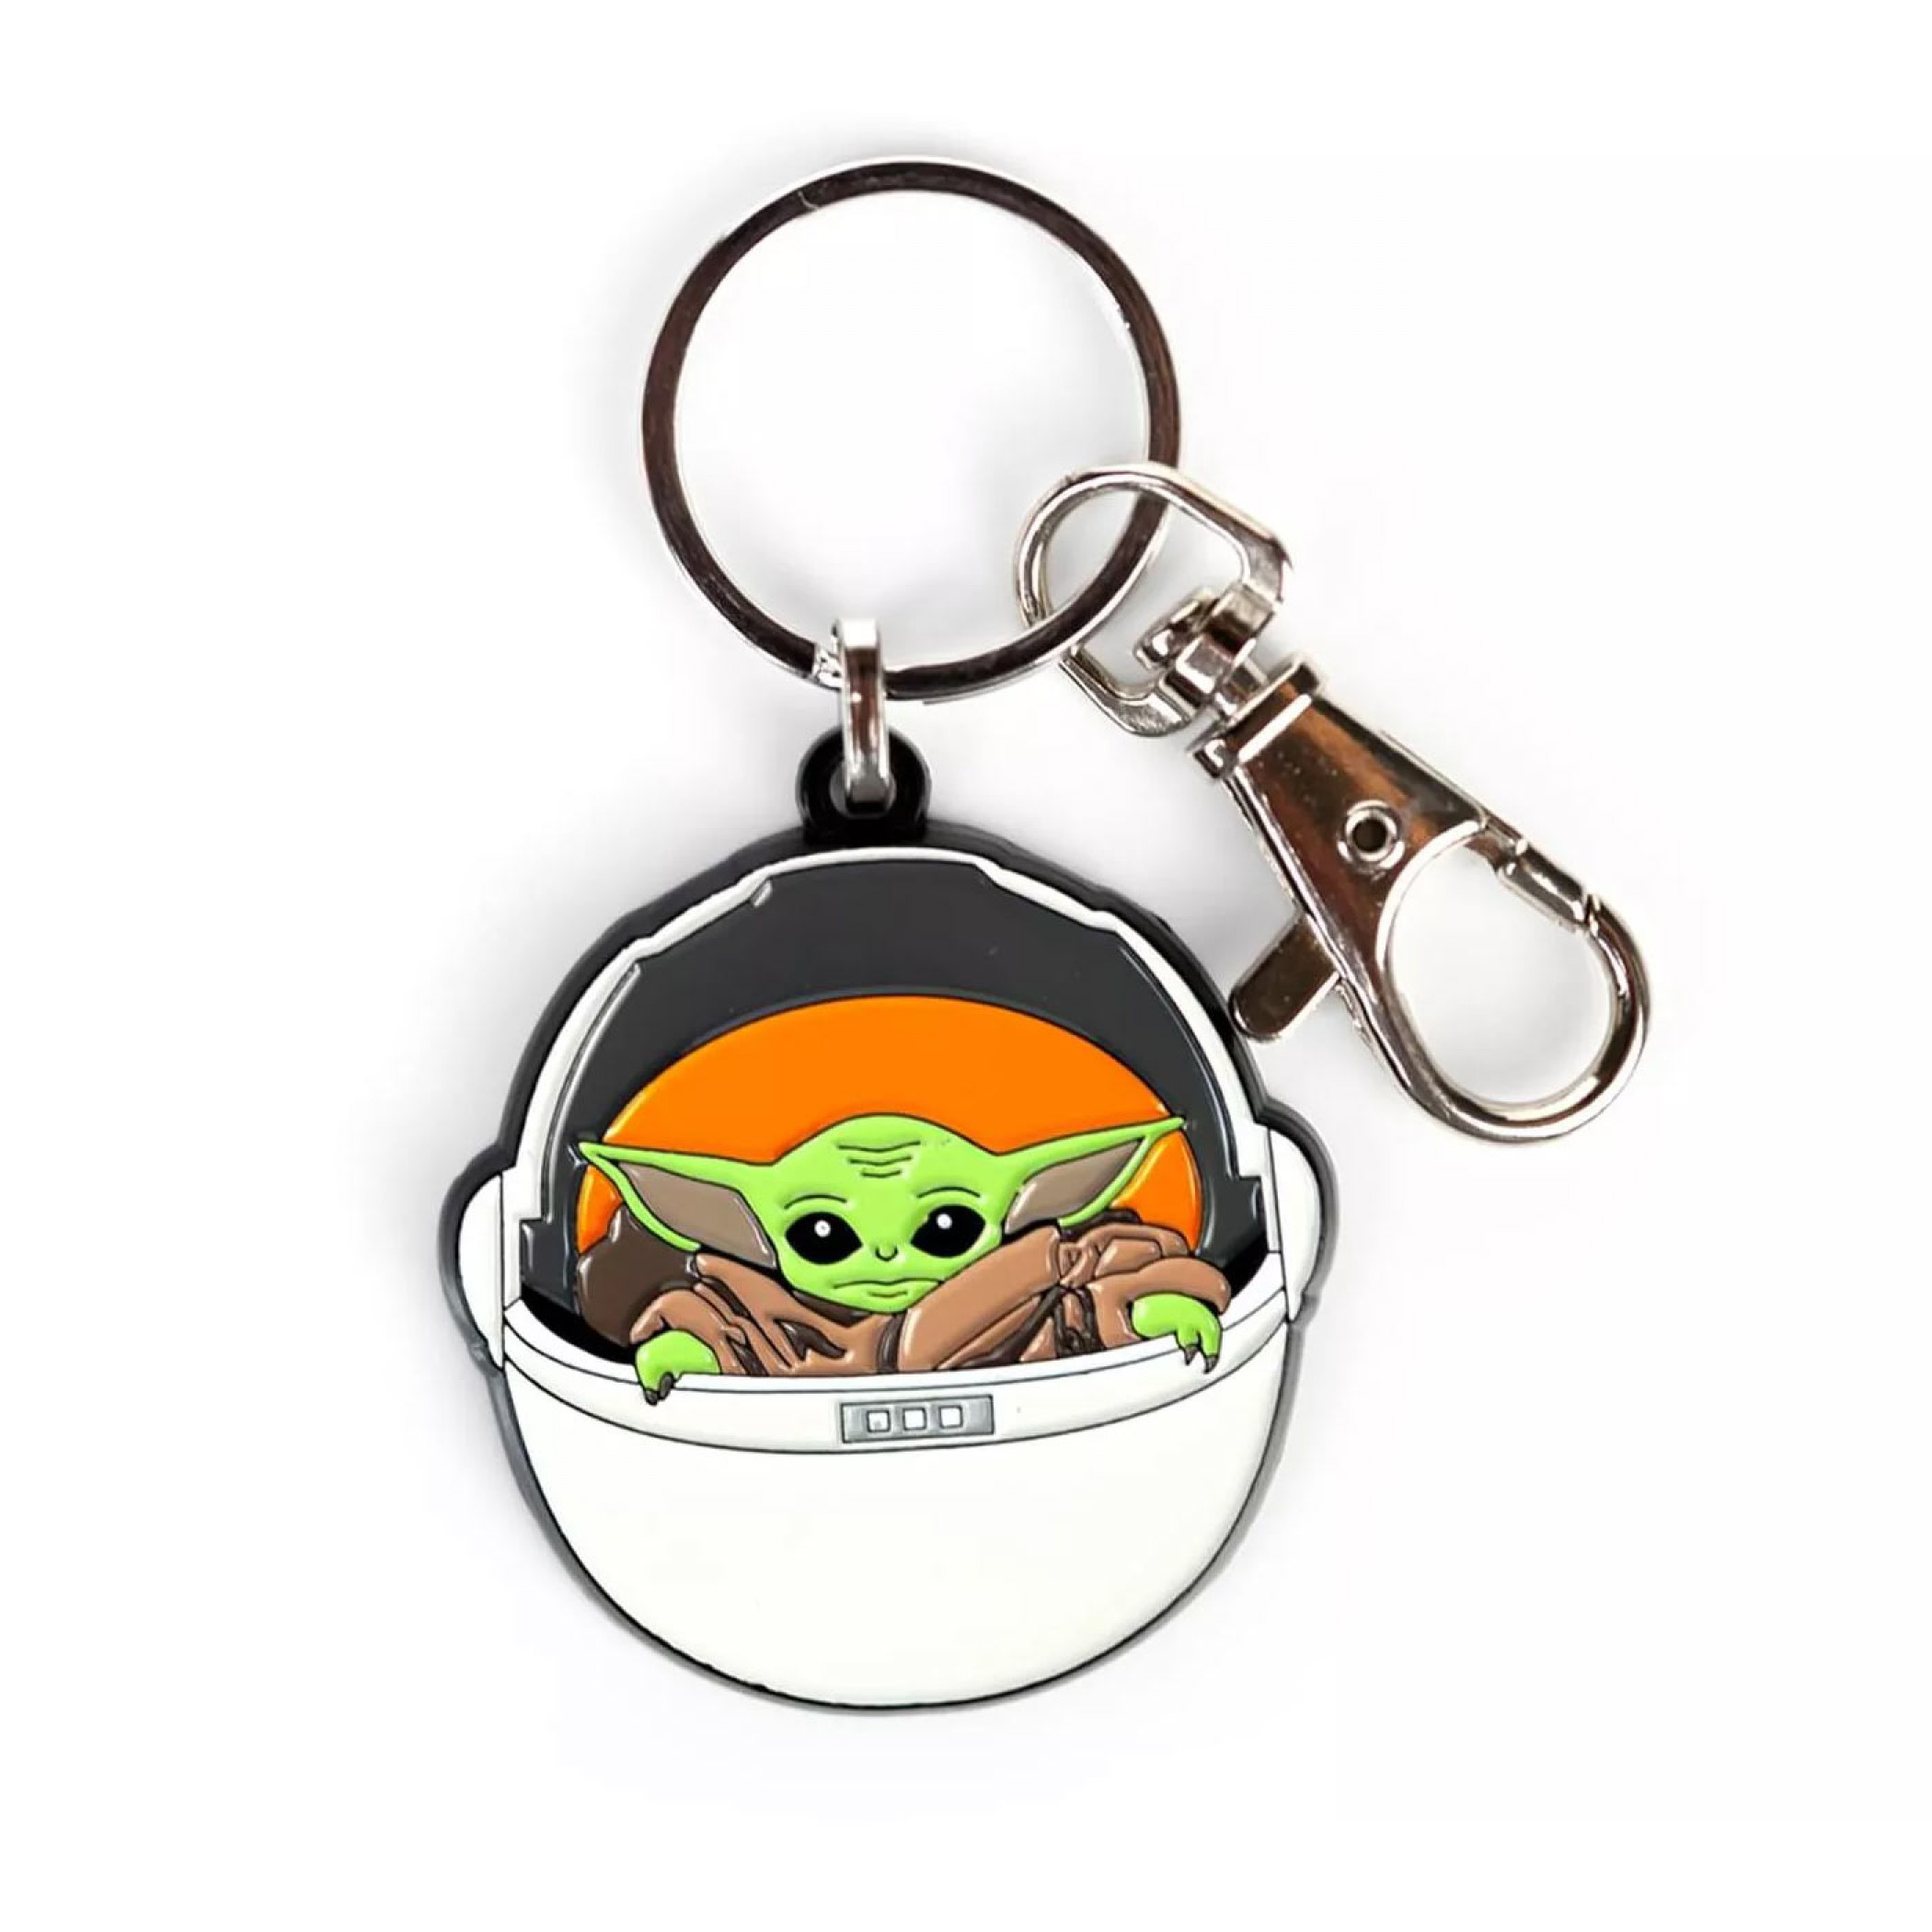 Star Wars The Child from the Mandalorian Keychain Pendant